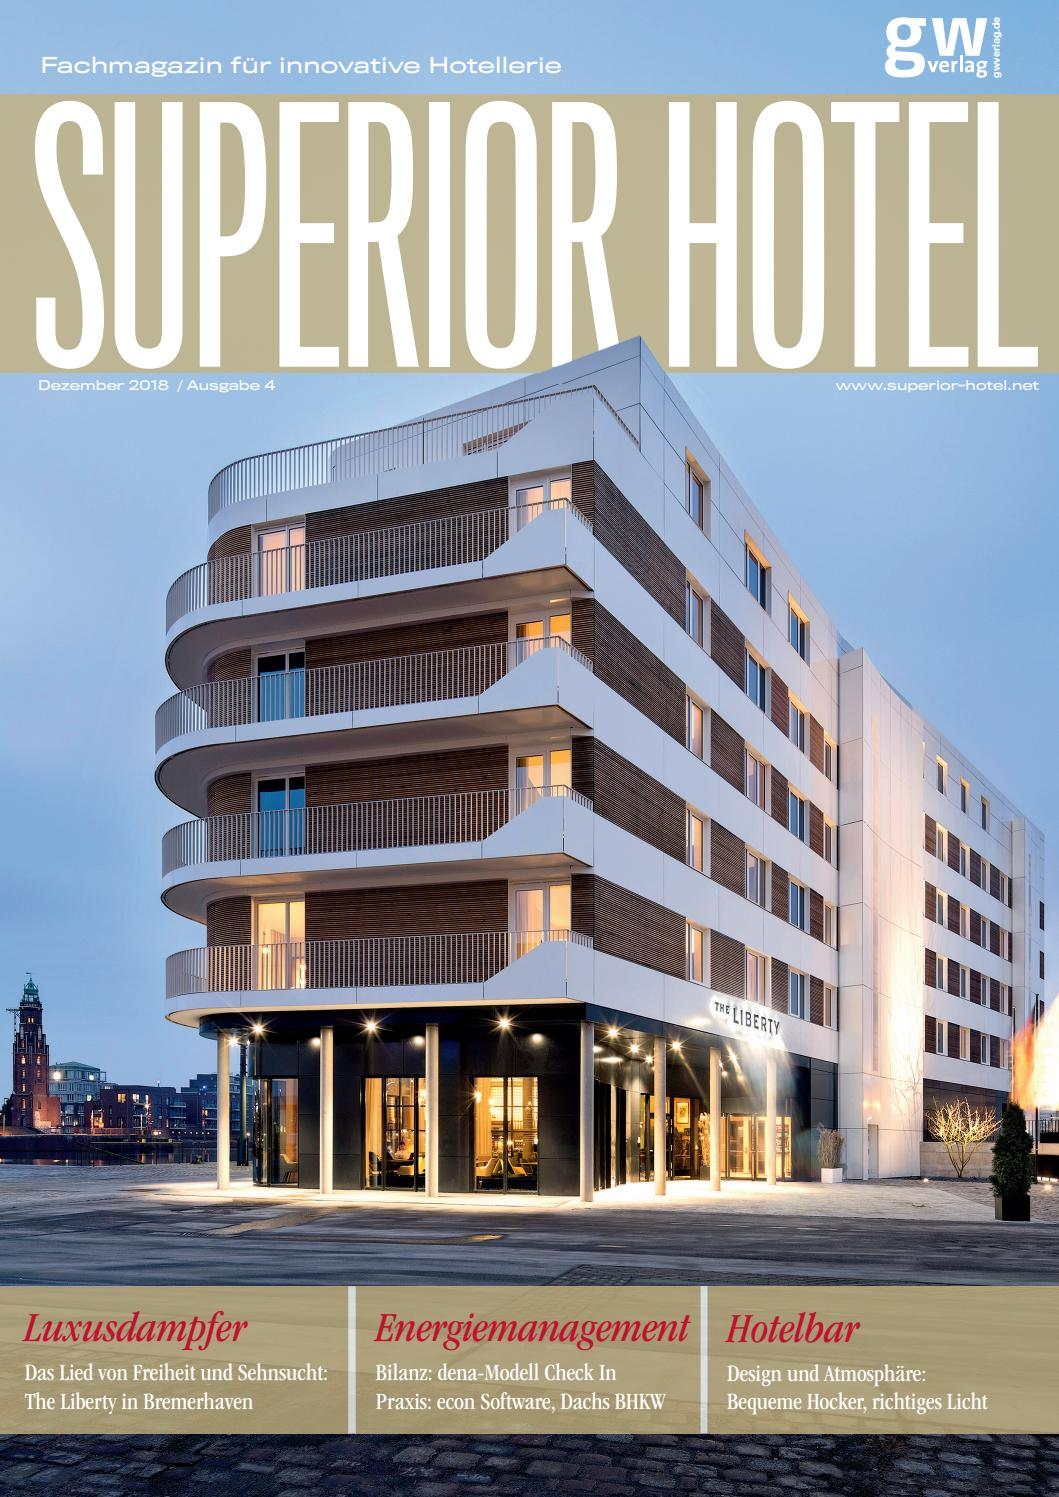 Fliesen Center Bad Reichenhall Superior Hotel 4 2018 By Gw Verlag Issuu